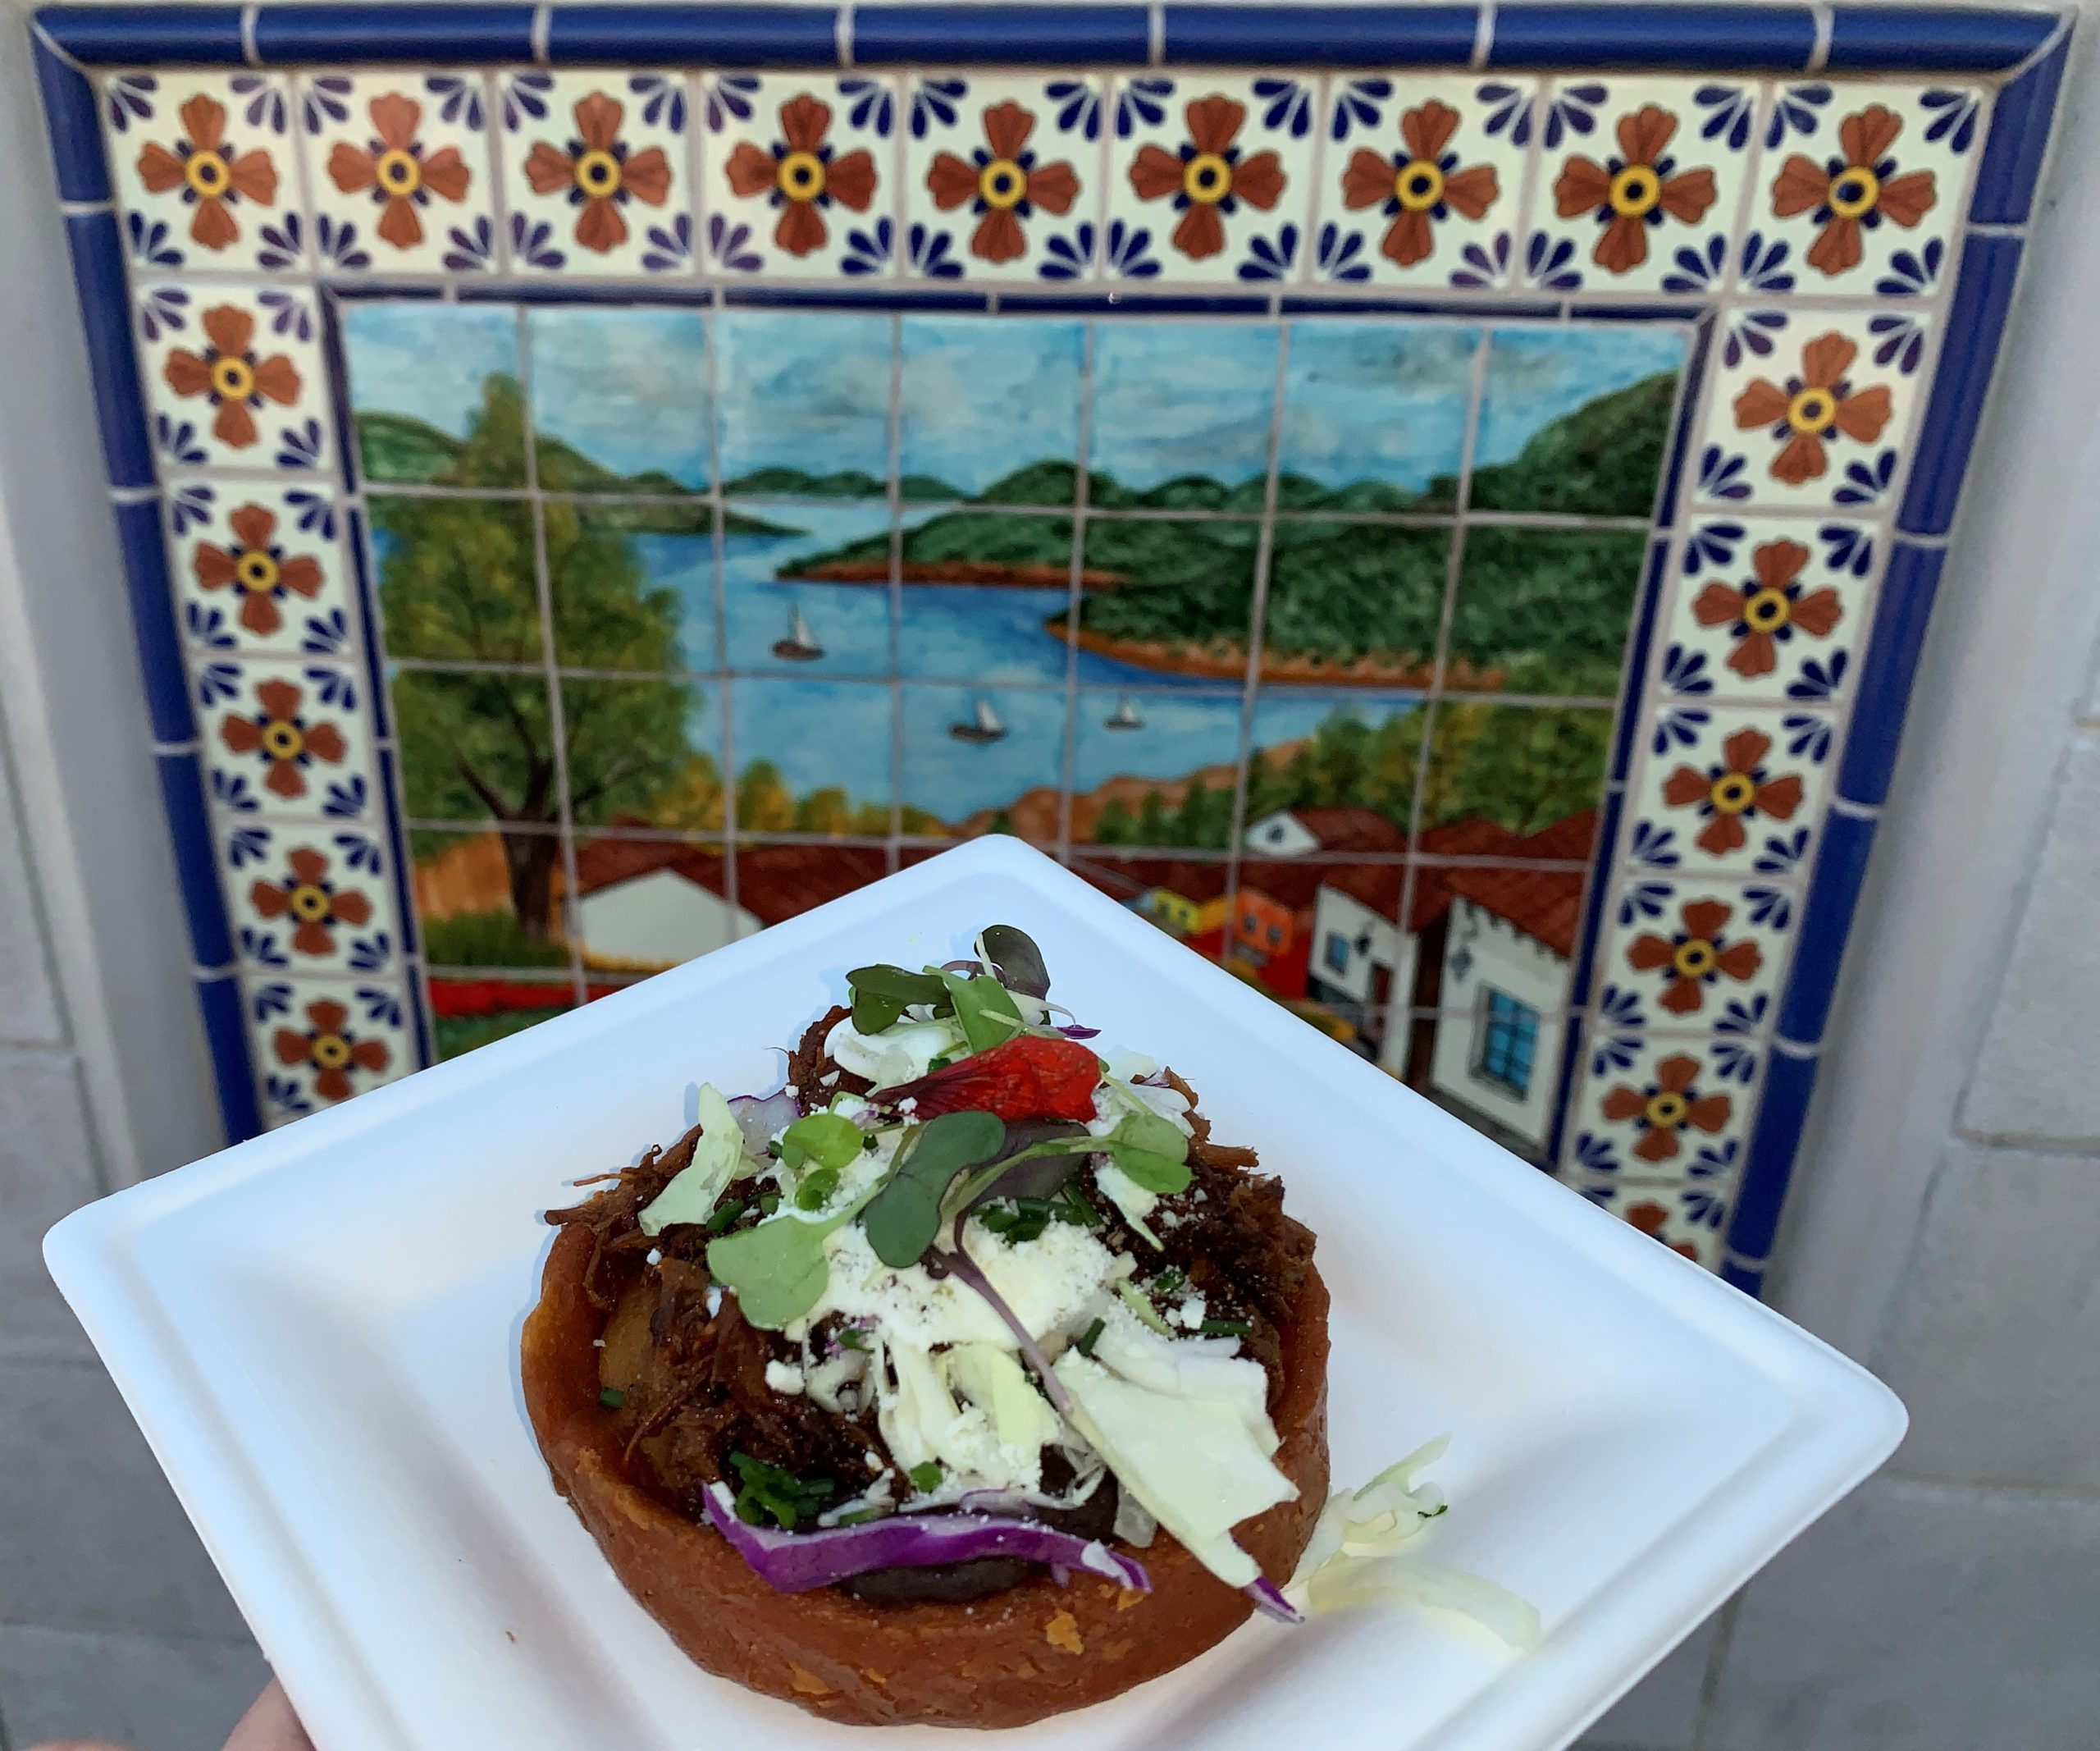 Sopes de Barbacoa: Braised Barbacoa Beef served on Fried Guajillo Corn Shell with Black Beans, Cotija Cheese, Mexican Cream and Chives from El Arista Hambriento in Mexico